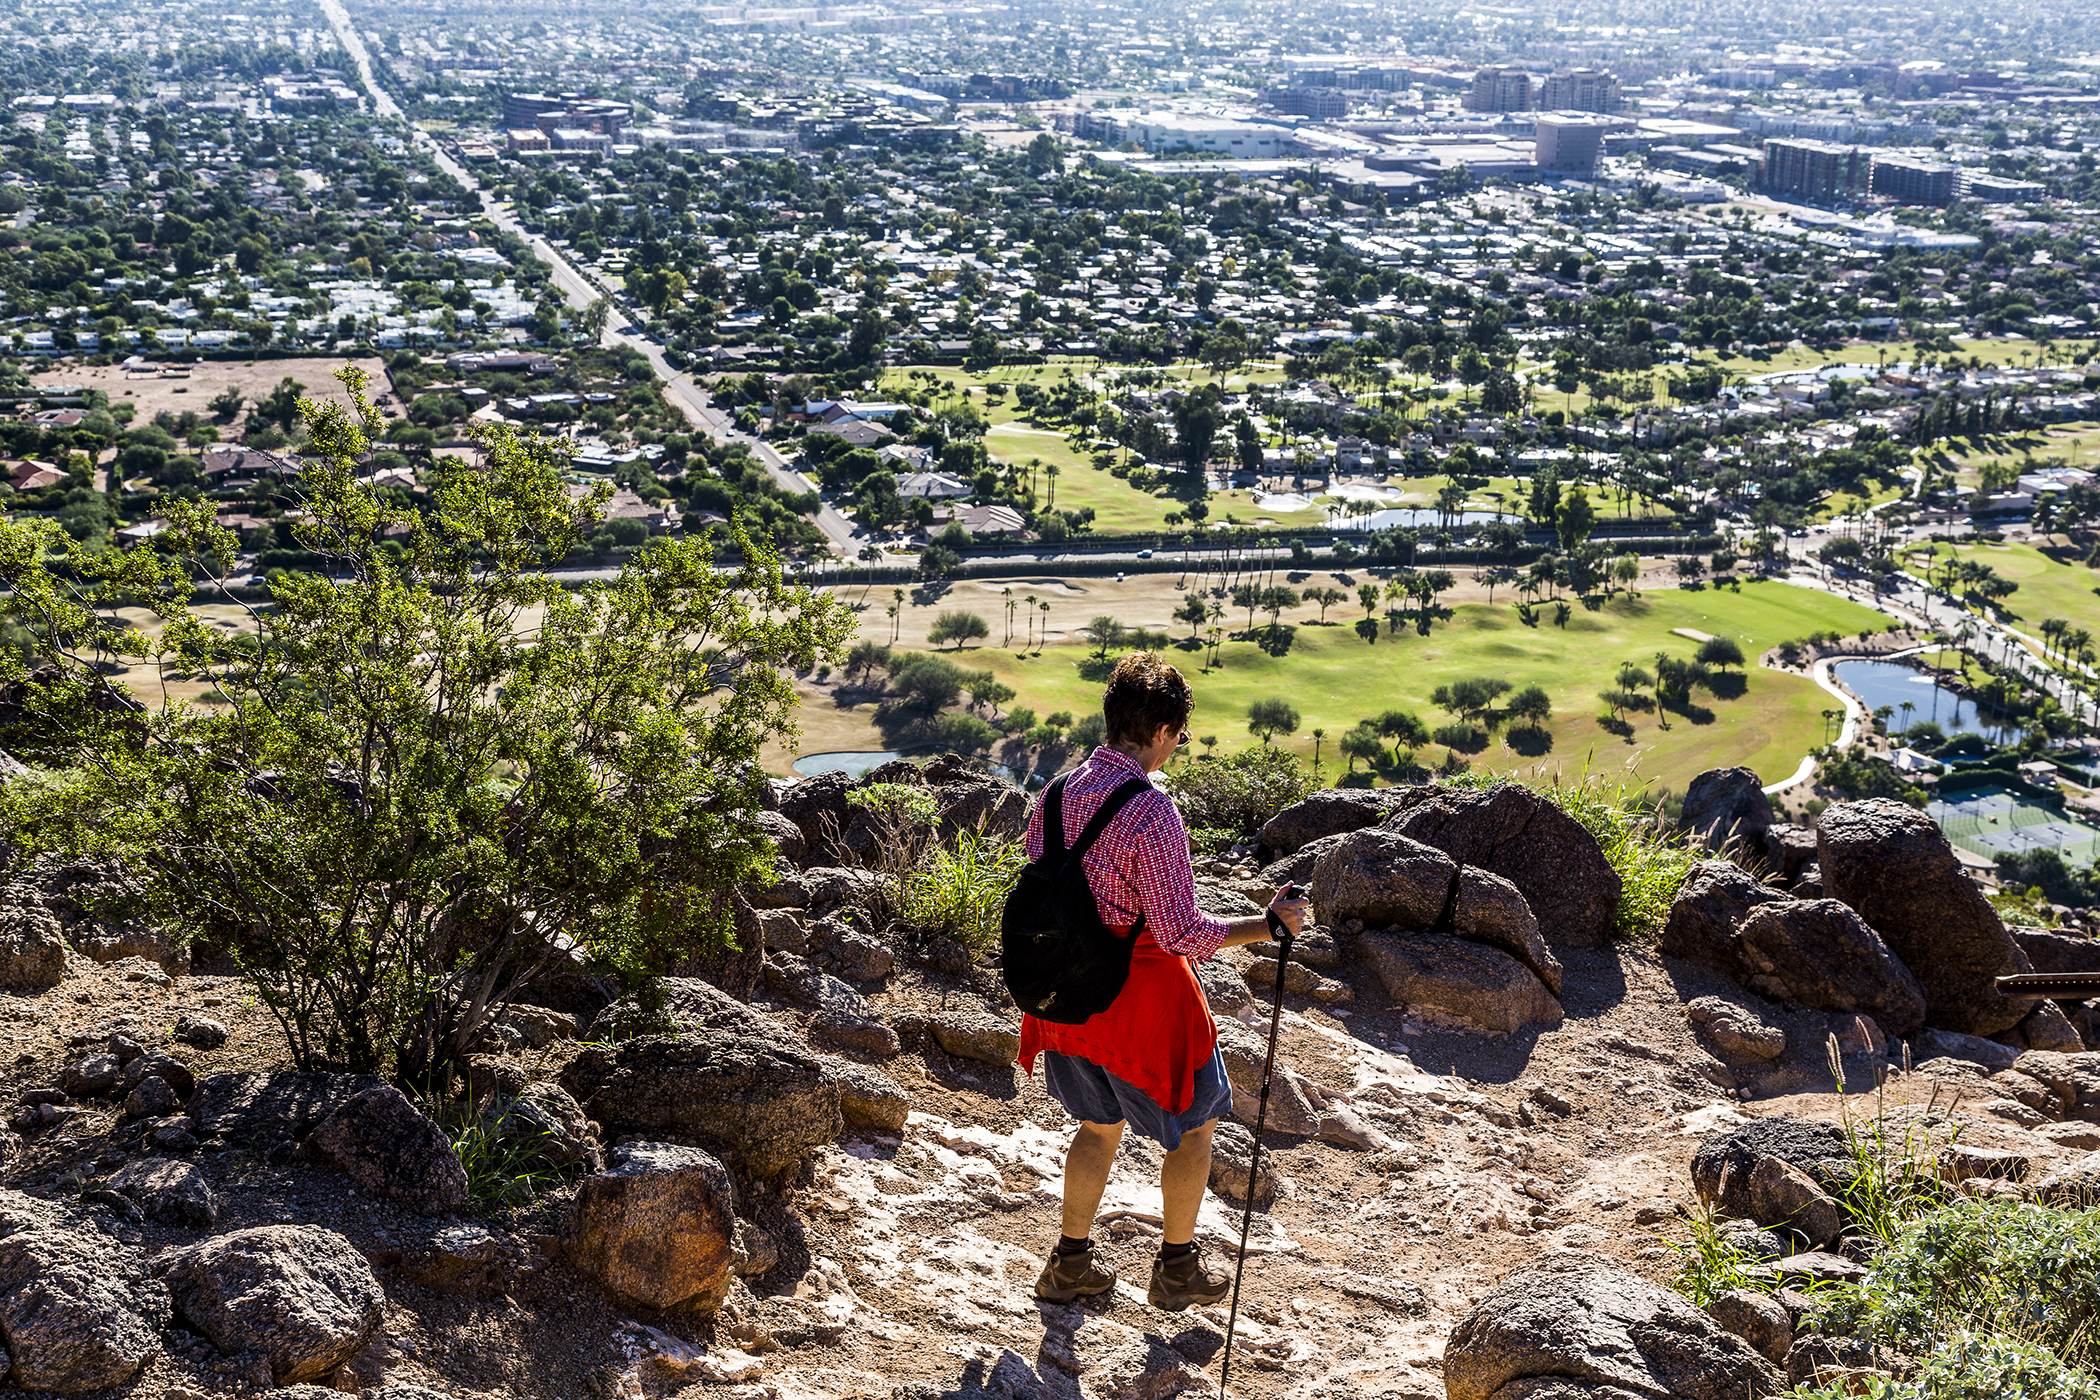 Hiking the Cholla Trail above Scottsdale Arizona.